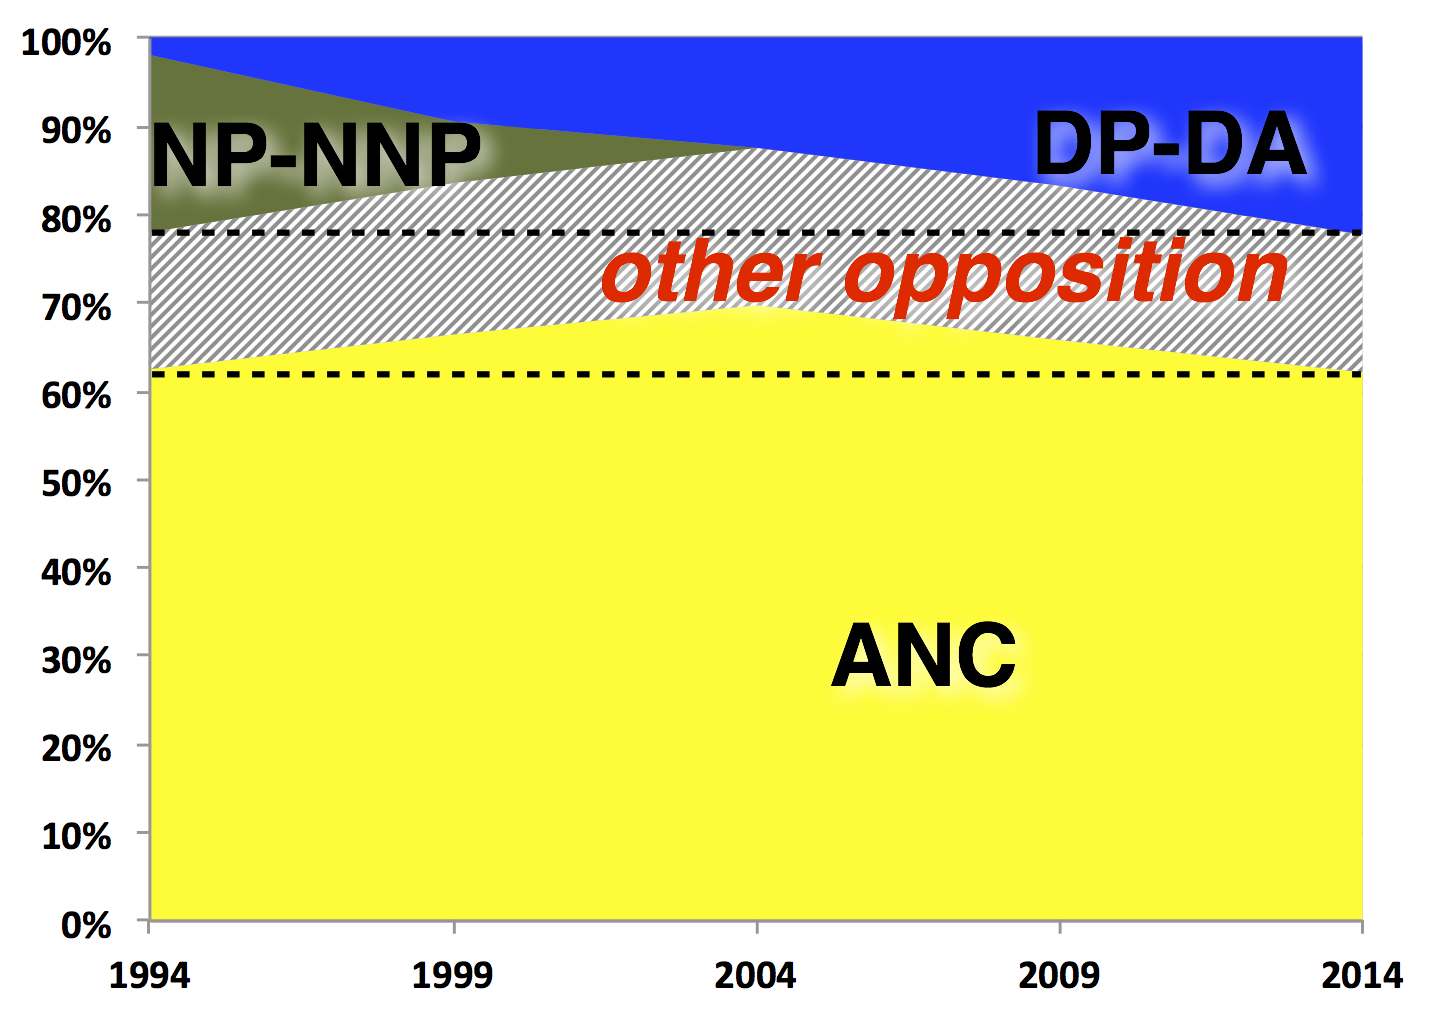 Vote since 1994 including NP and NNP